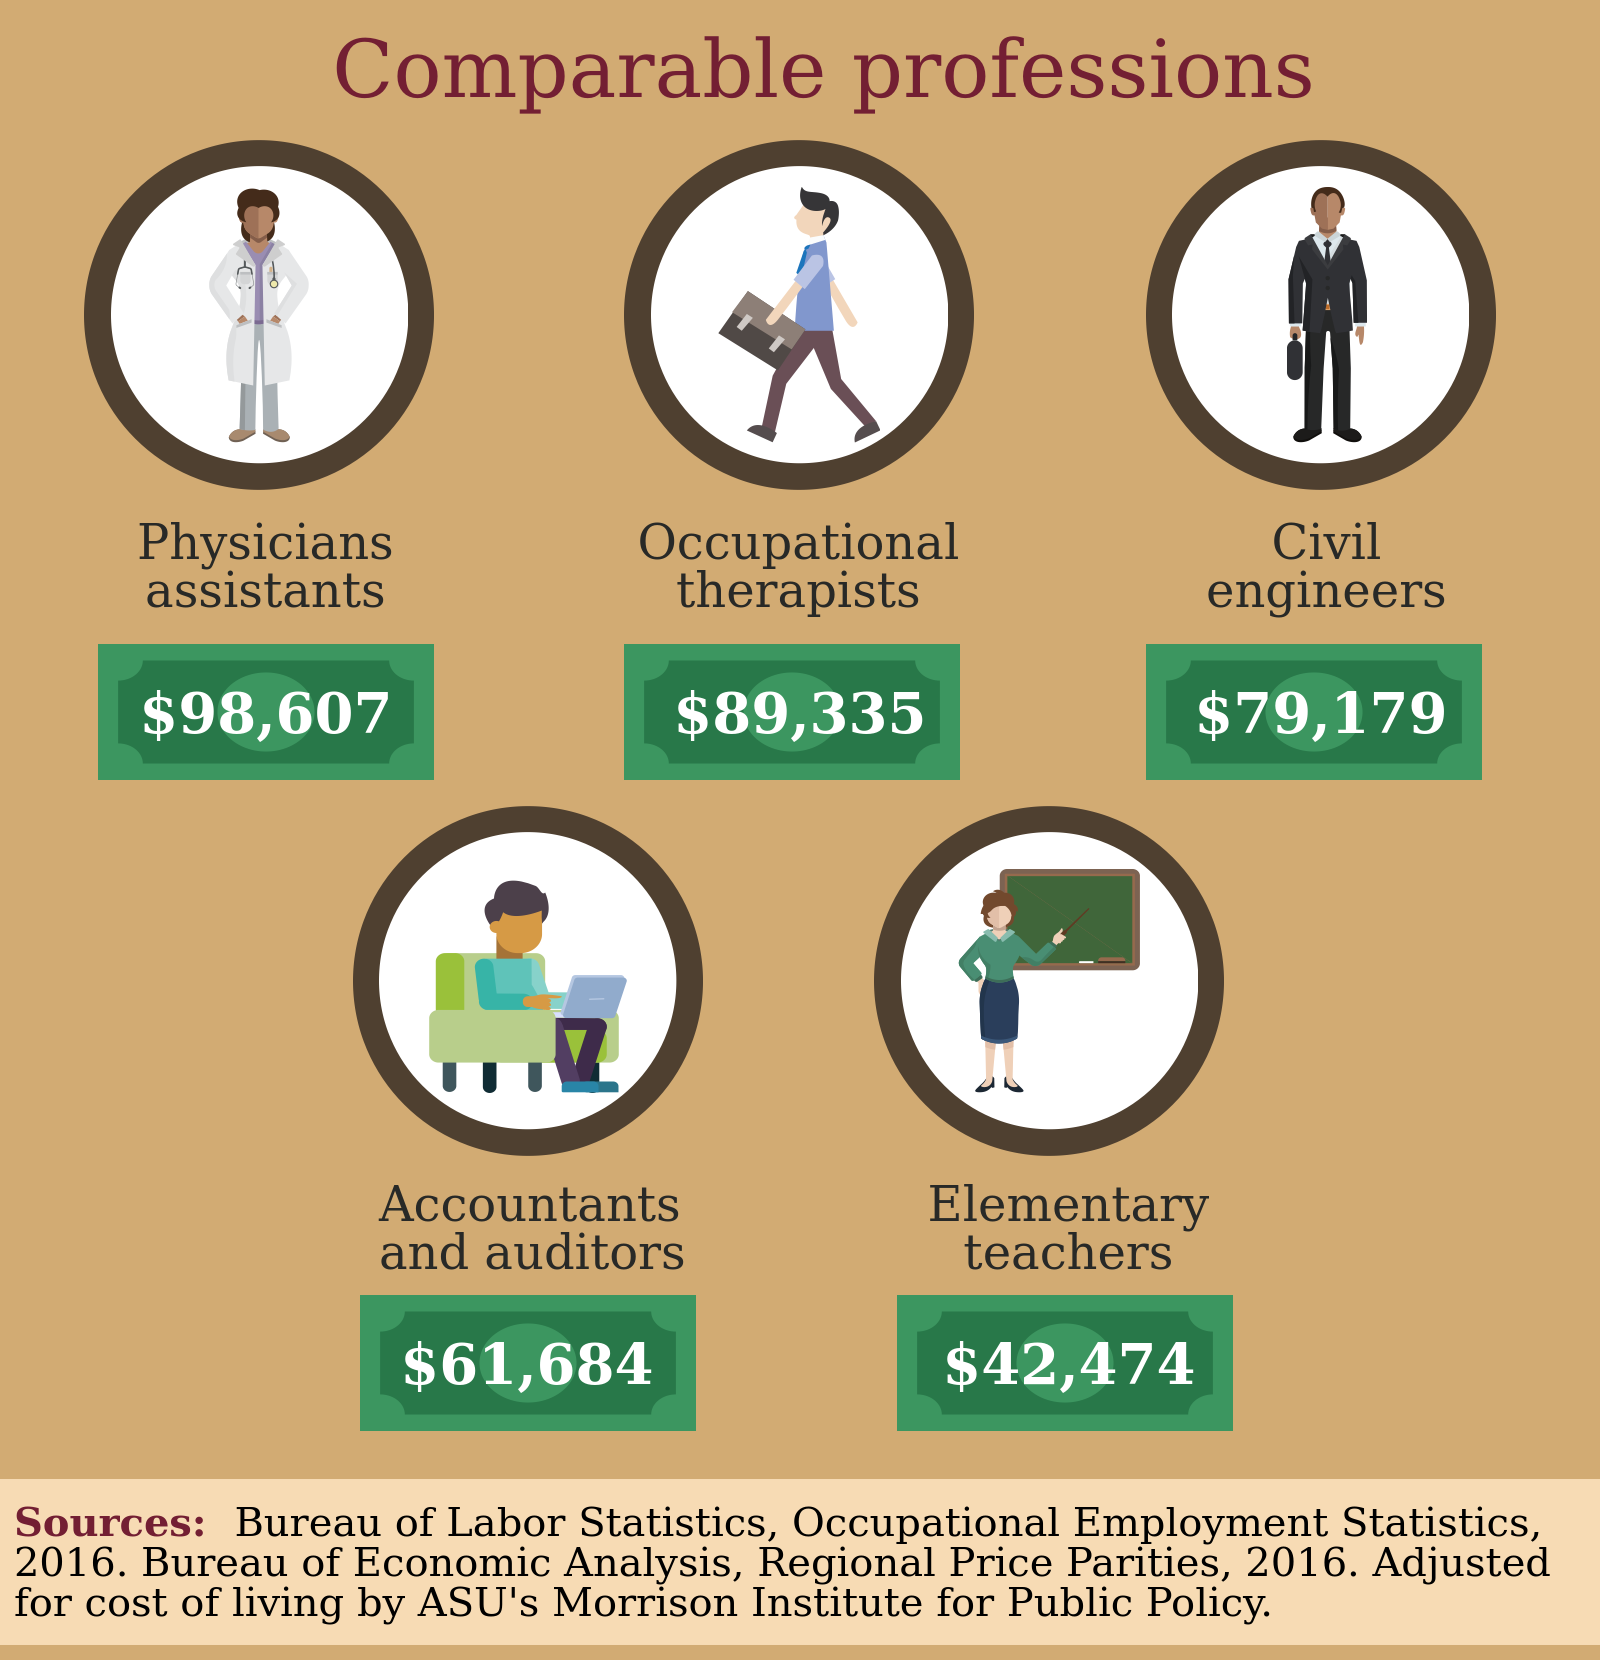 $1B: Cost to raise AZ teachers' salaries to U.S. median azednewsComparableProfessions